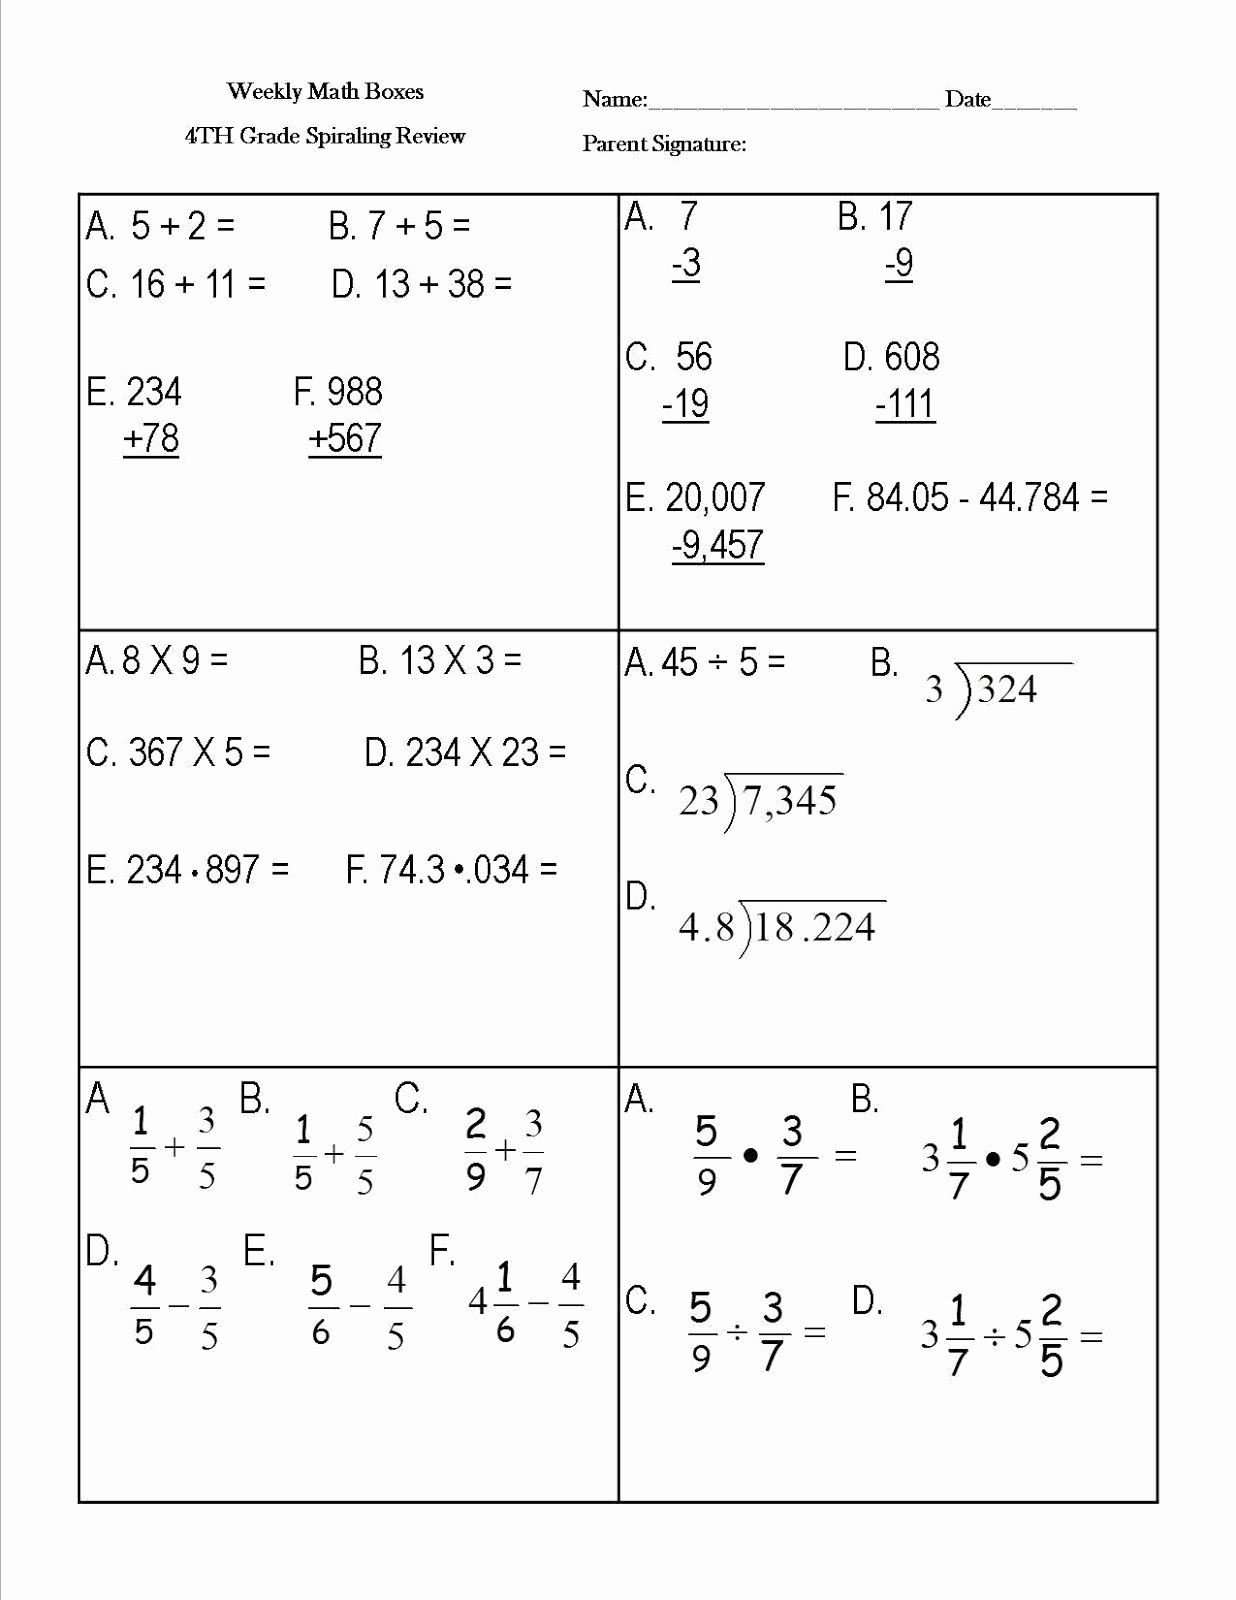 Nwea Math Practice Worksheets New Instantly Nwea Math Practice Worksheets